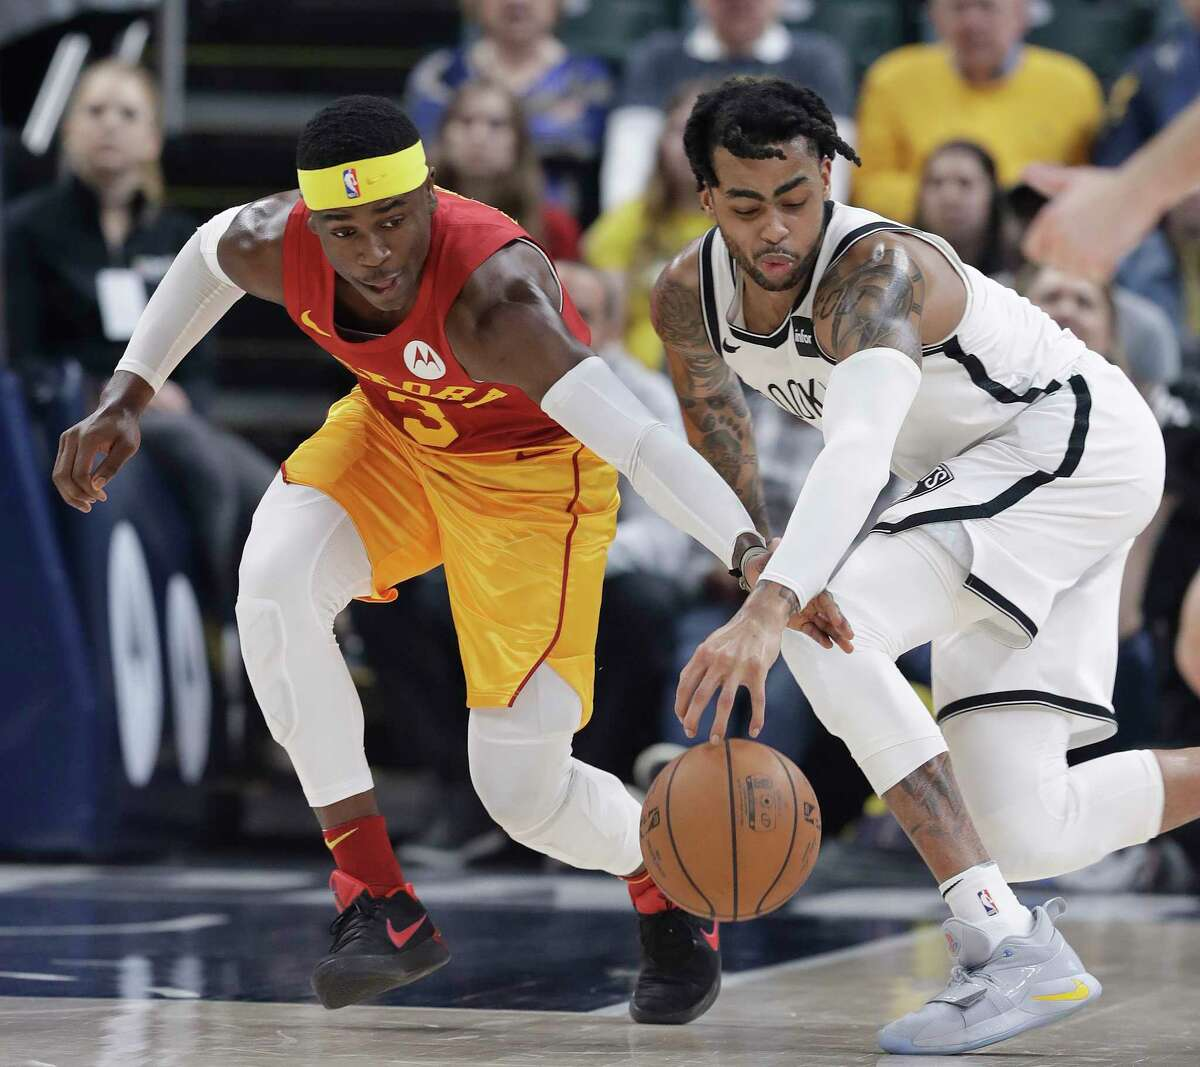 Indiana Pacers' Aaron Holiday (3) and Brooklyn Nets' D'Angelo Russell (1) go for a loose ball during the first half of an NBA basketball game Sunday, April 7, 2019, in Indianapolis. (AP Photo/Darron Cummings)